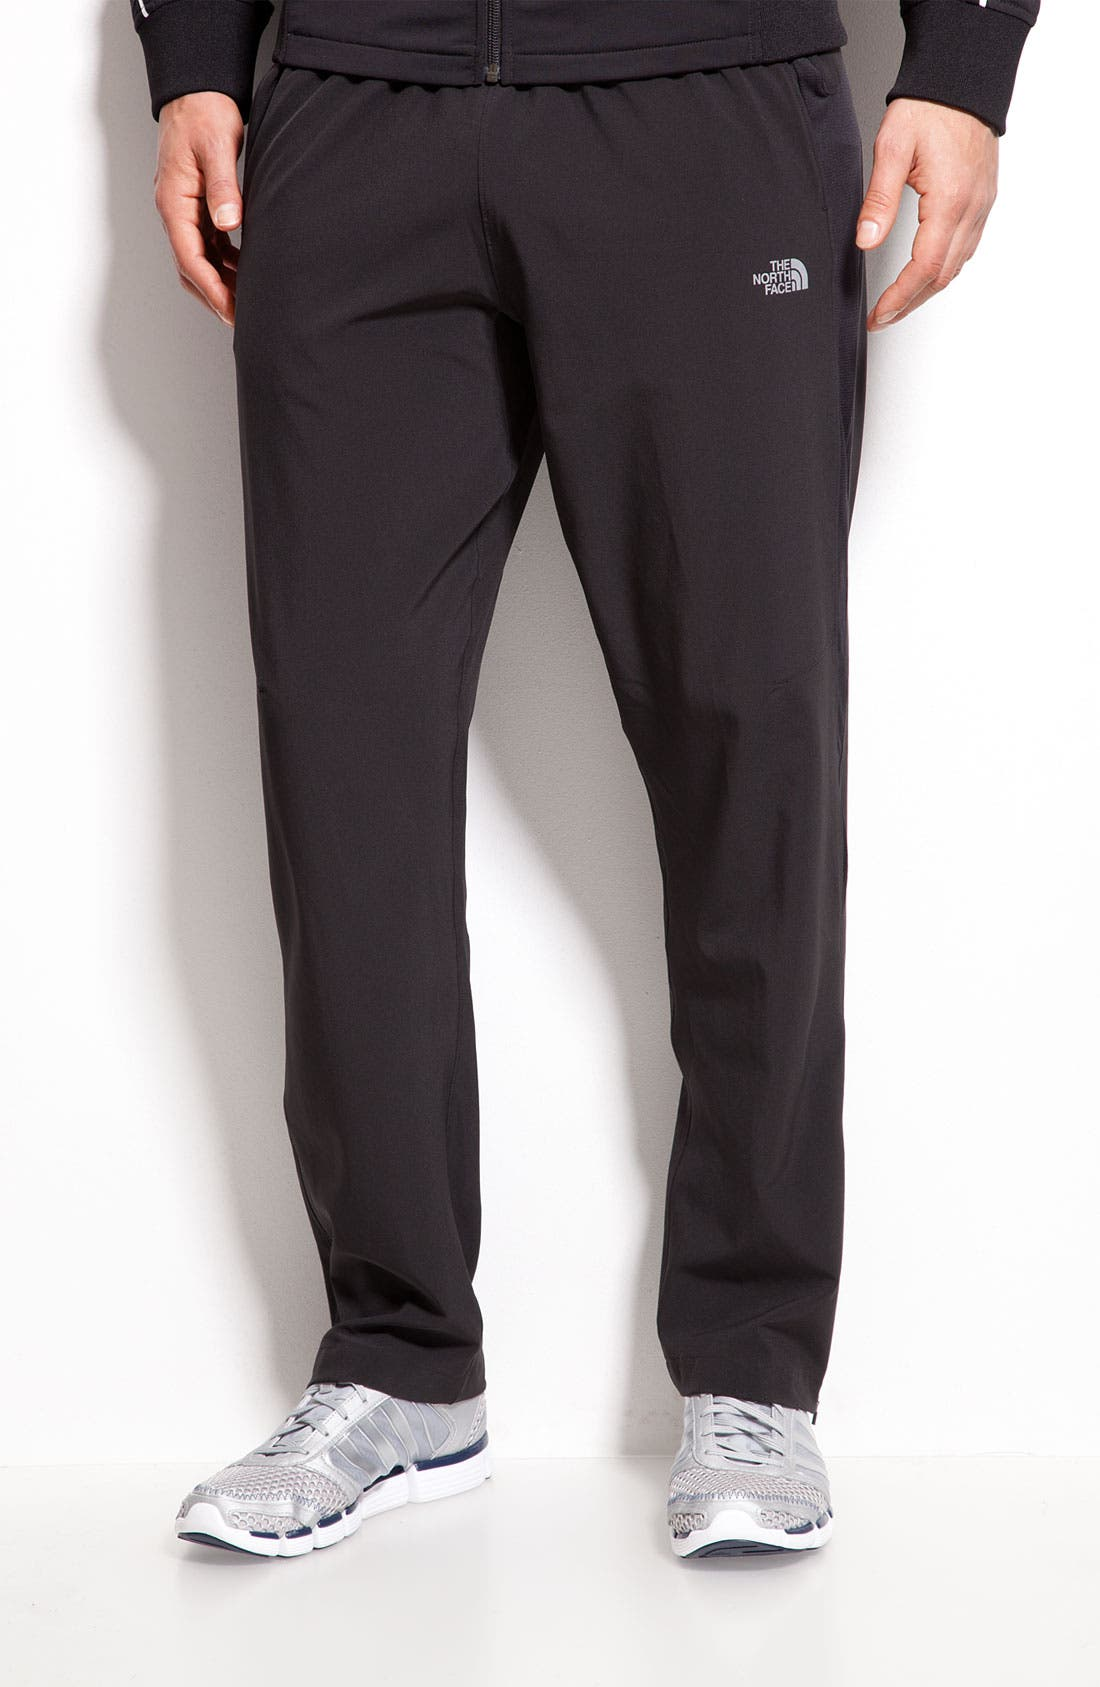 Main Image - The North Face 'Agility' Lightweight Pants